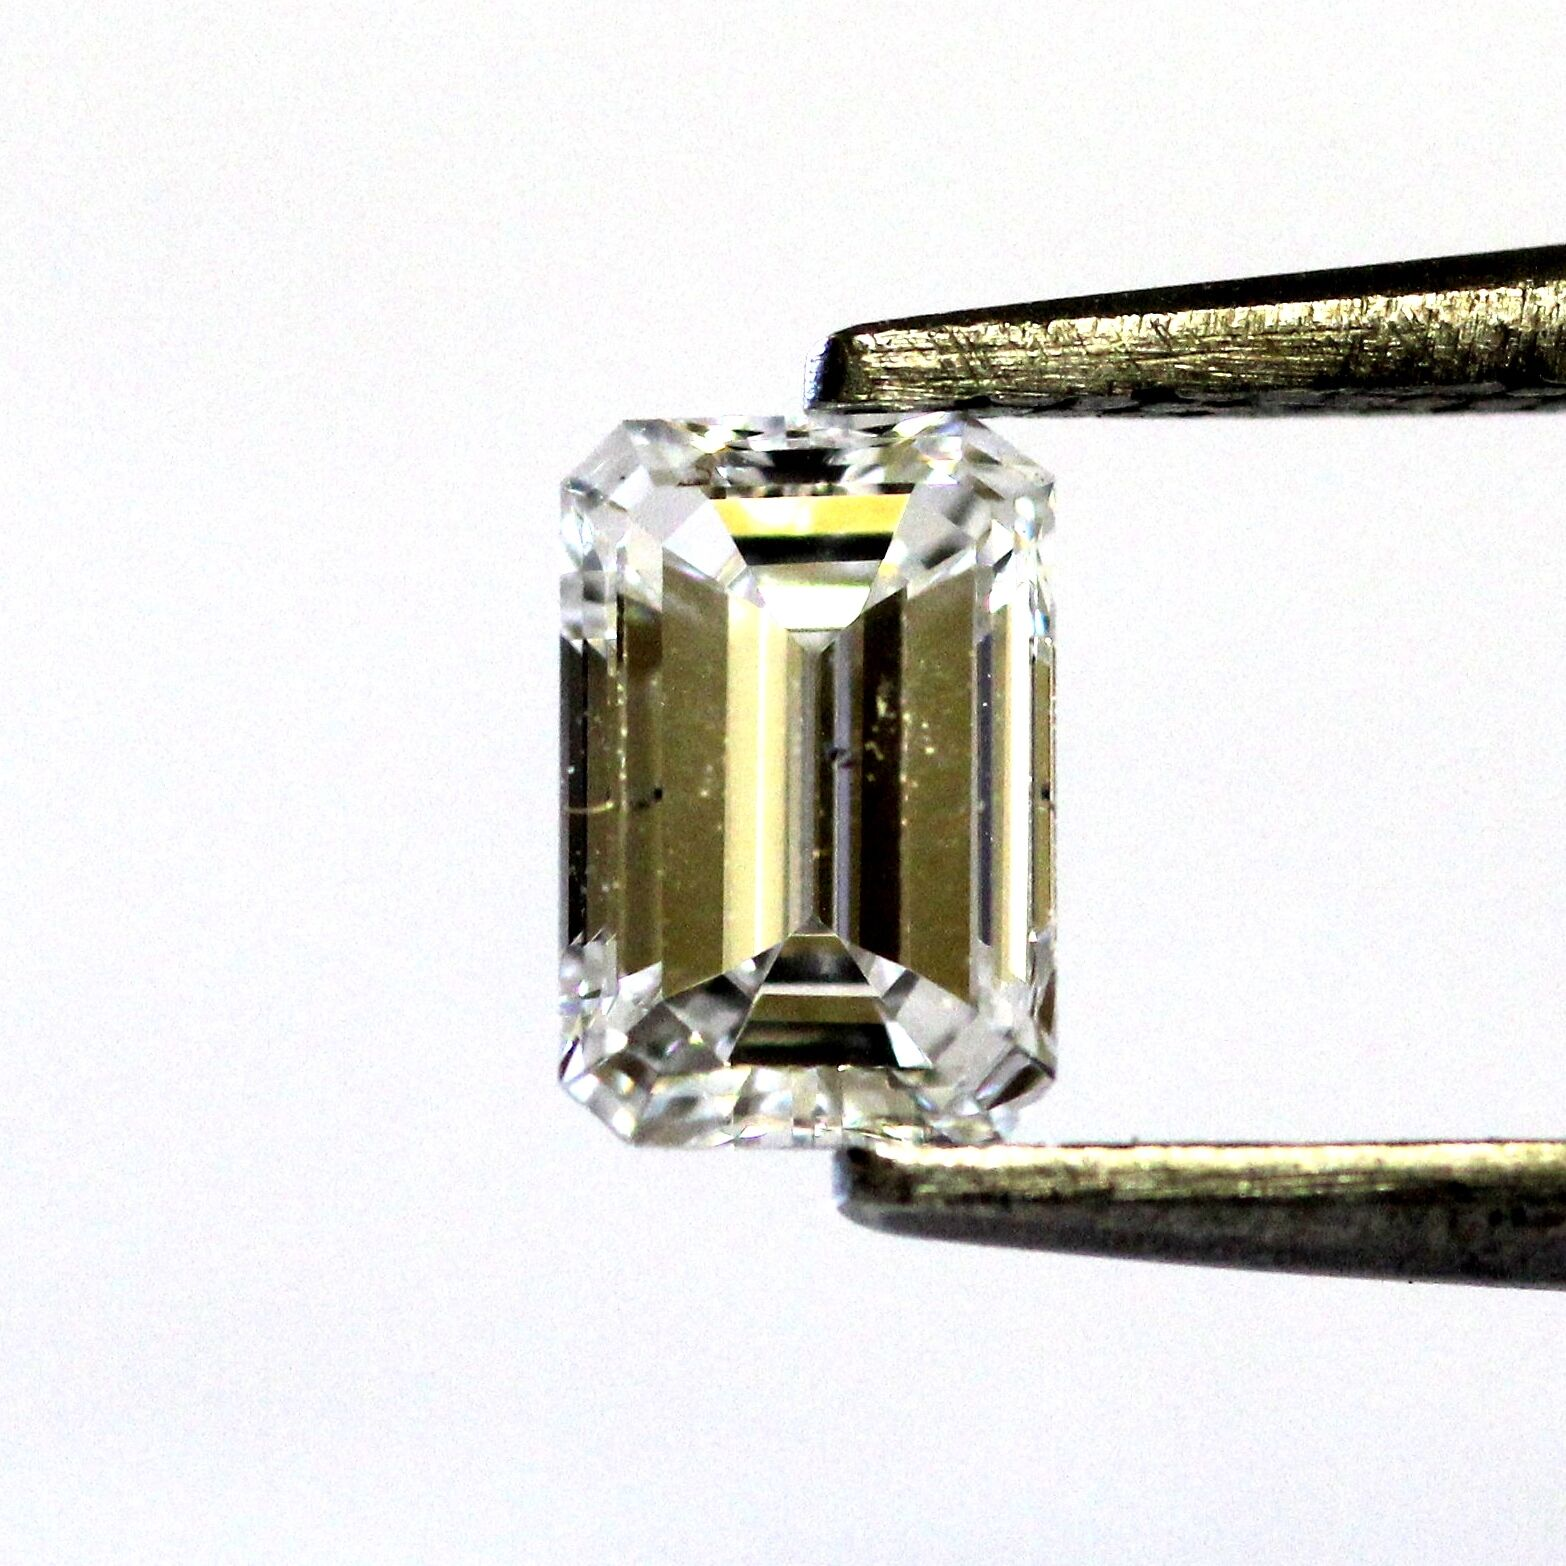 .70ct emerald cut loose diamond GIA Certified SI2 E 6.34 X 4.24 X 2.78MM vintage